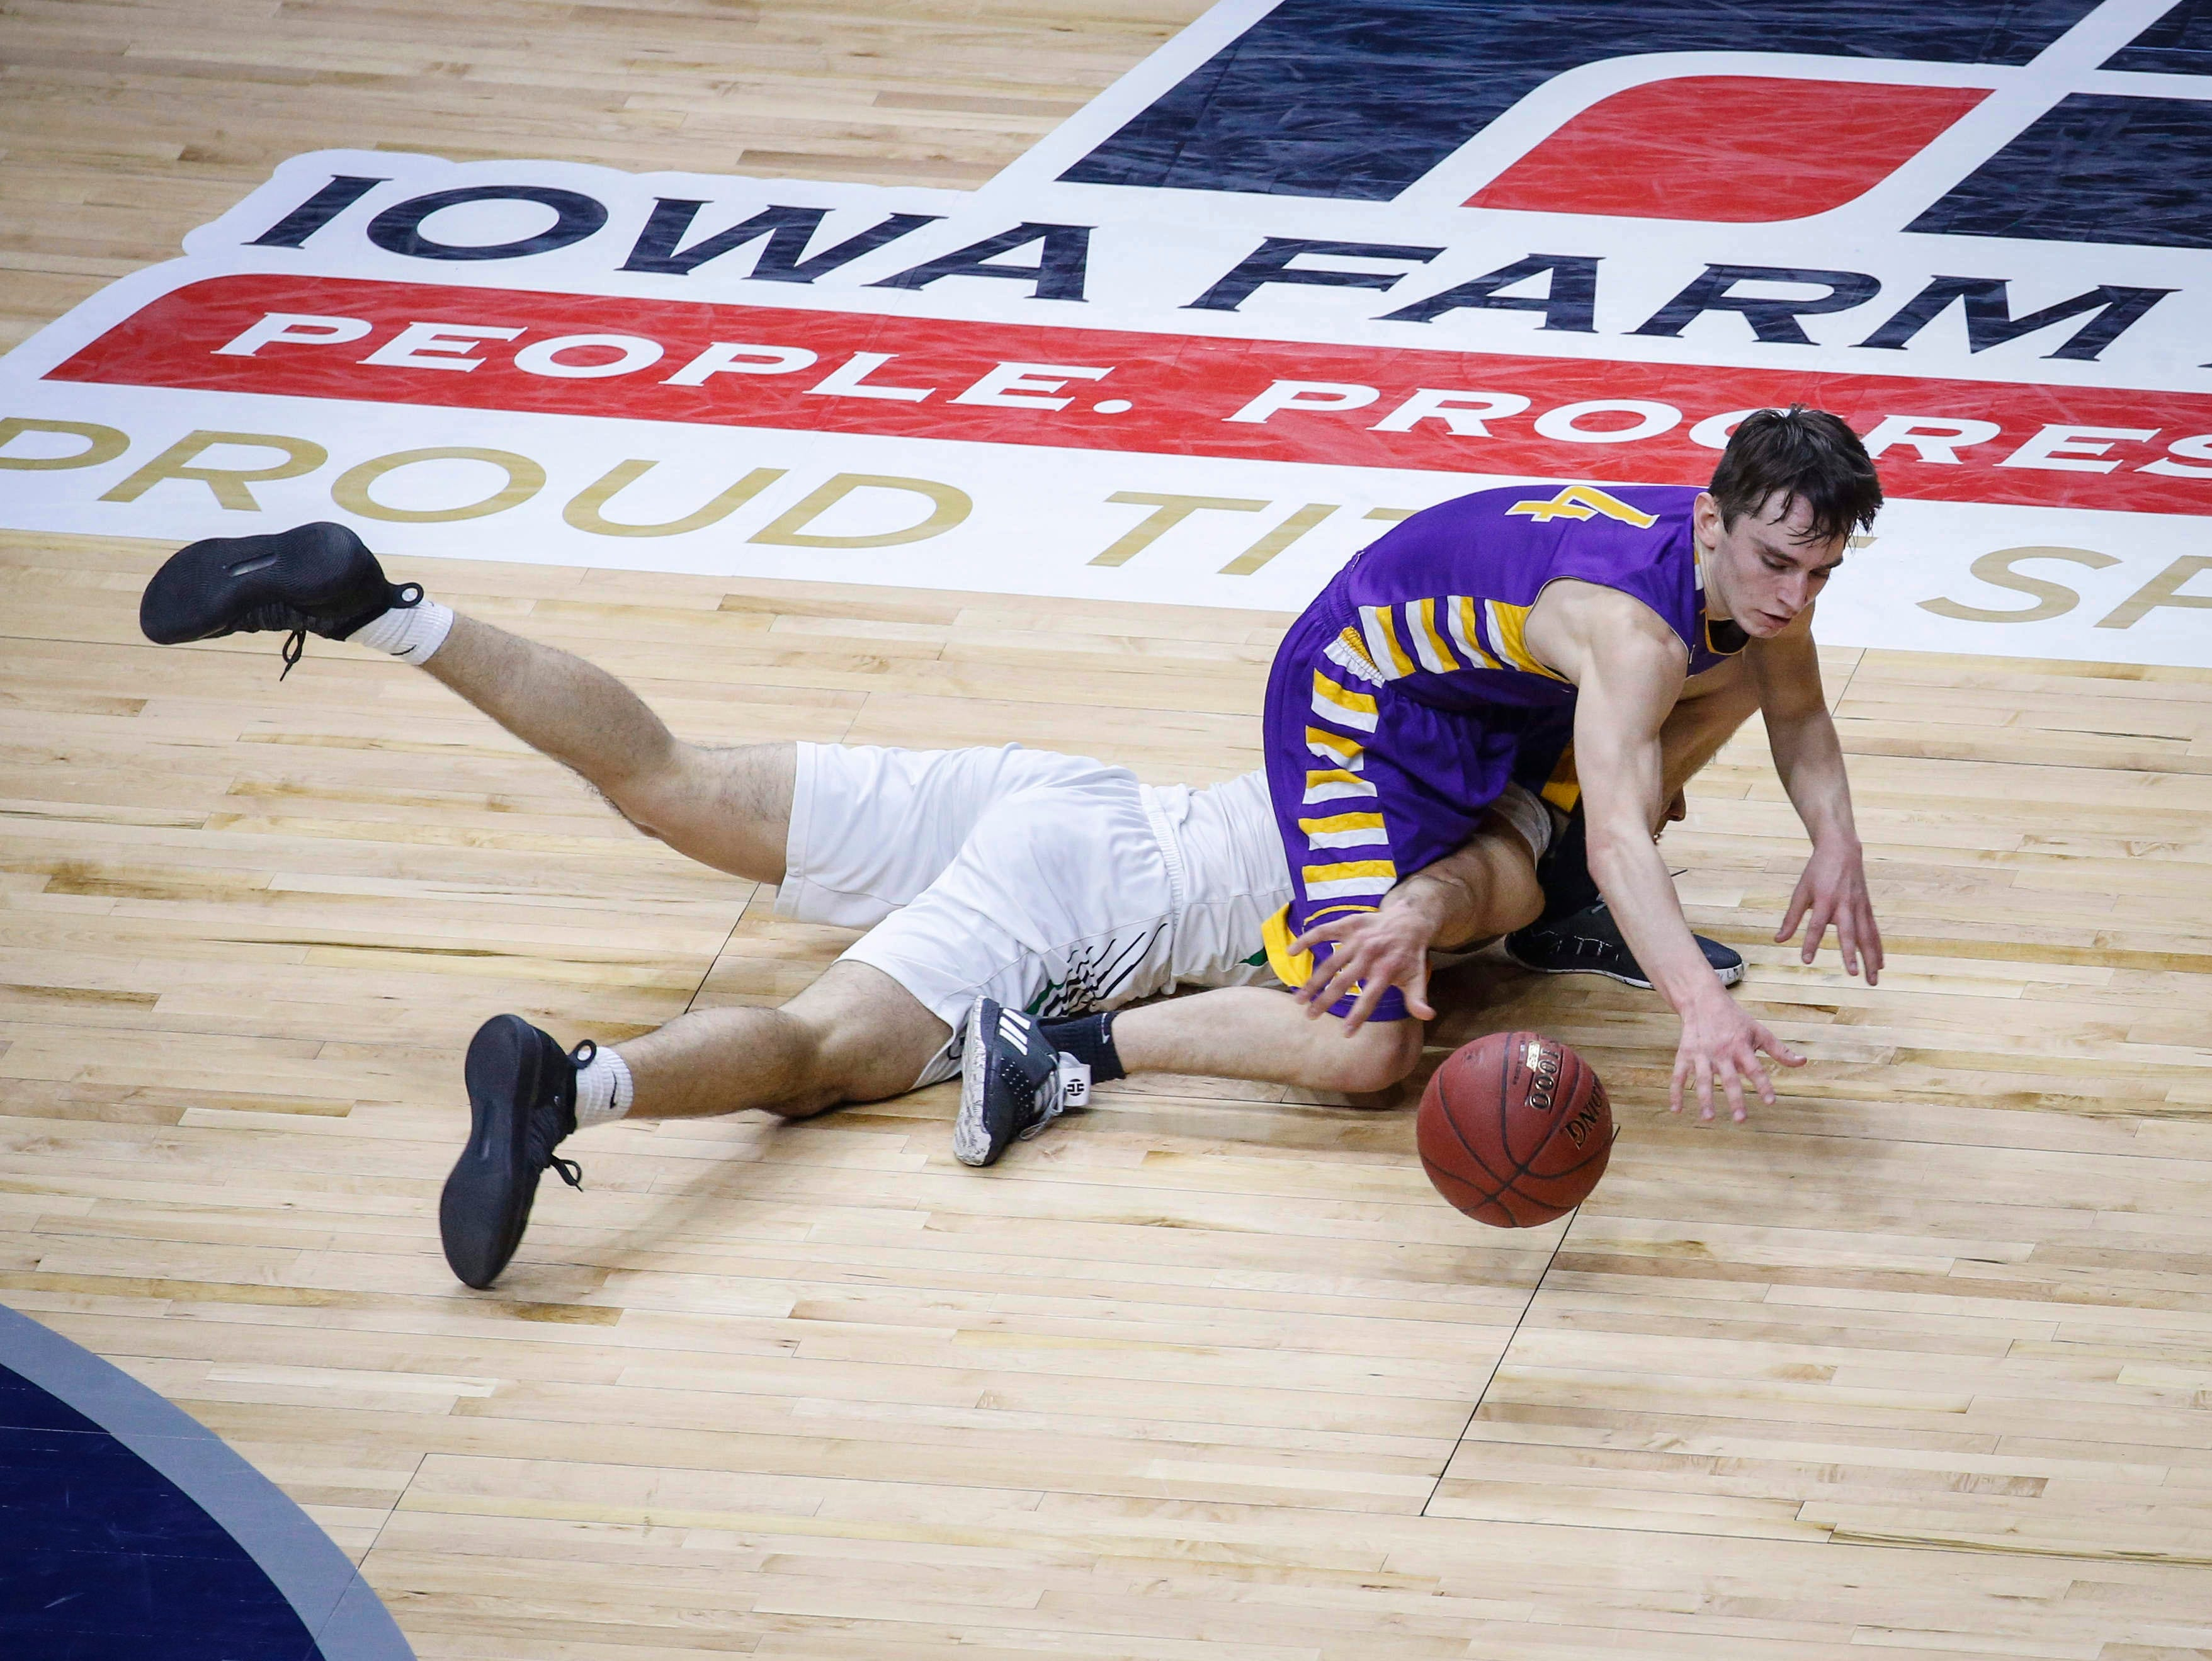 Alburnett senior Jared Graubard falls on top of Grand View Christian senior Arturo Montes as they fight for a loose ball in the first quarter during the Class 1A boys state basketball championship game on Friday, March 8, 2019, at Wells Fargo Arena in Des Moines.